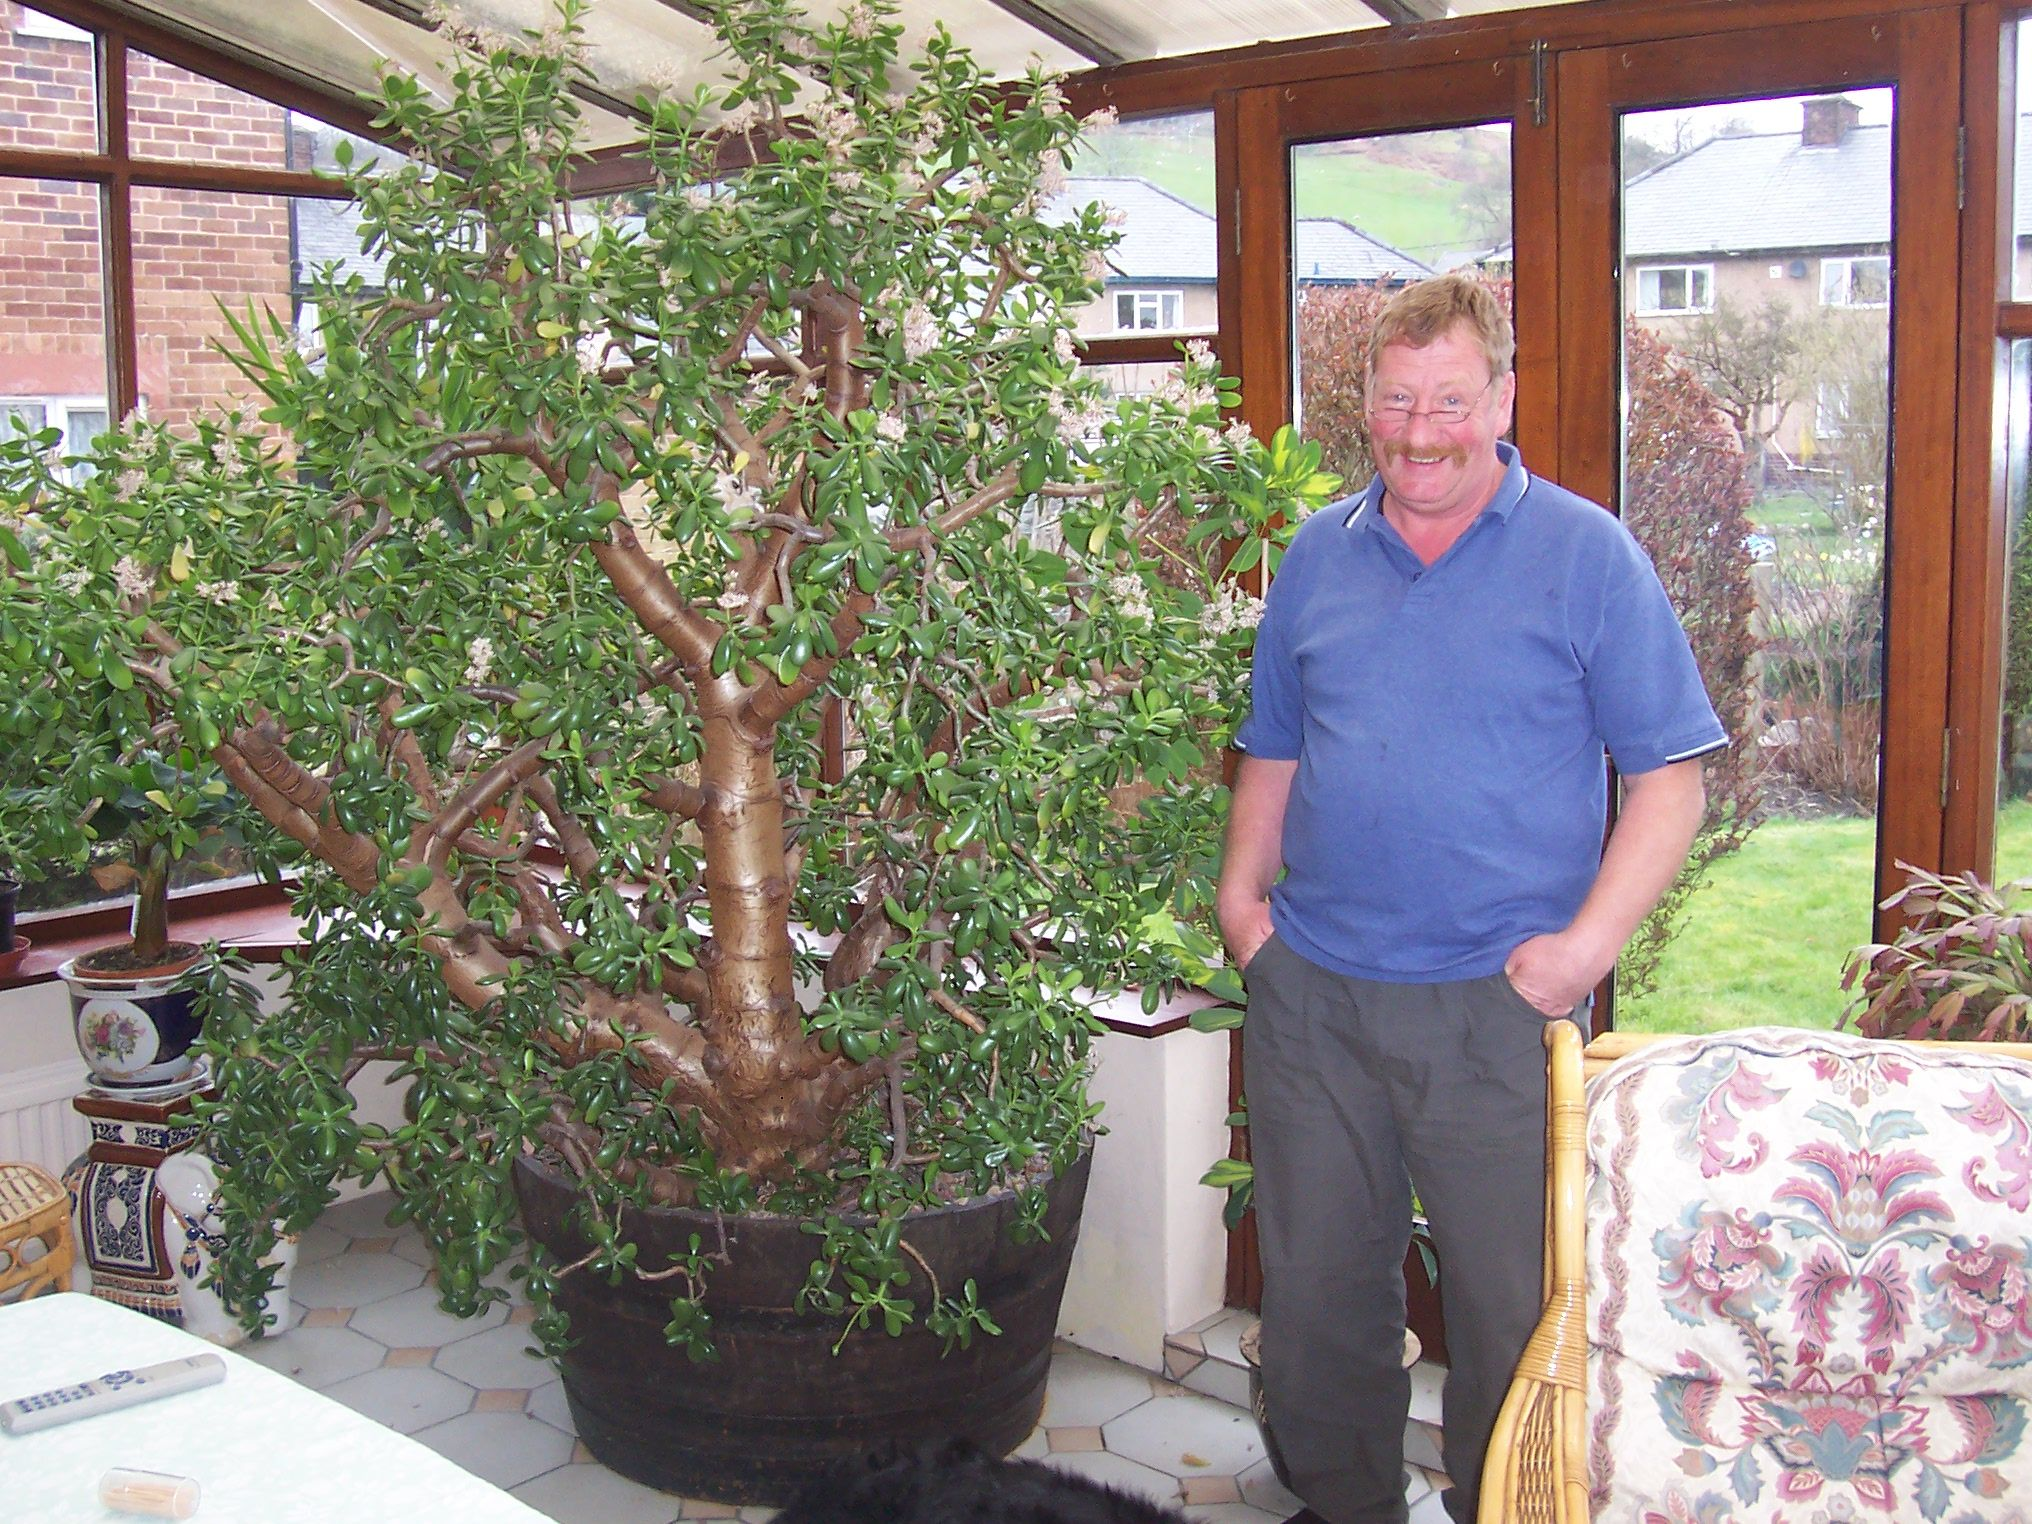 Giant Jade Money Plant Hope Mine Looks Like This In 27 Years